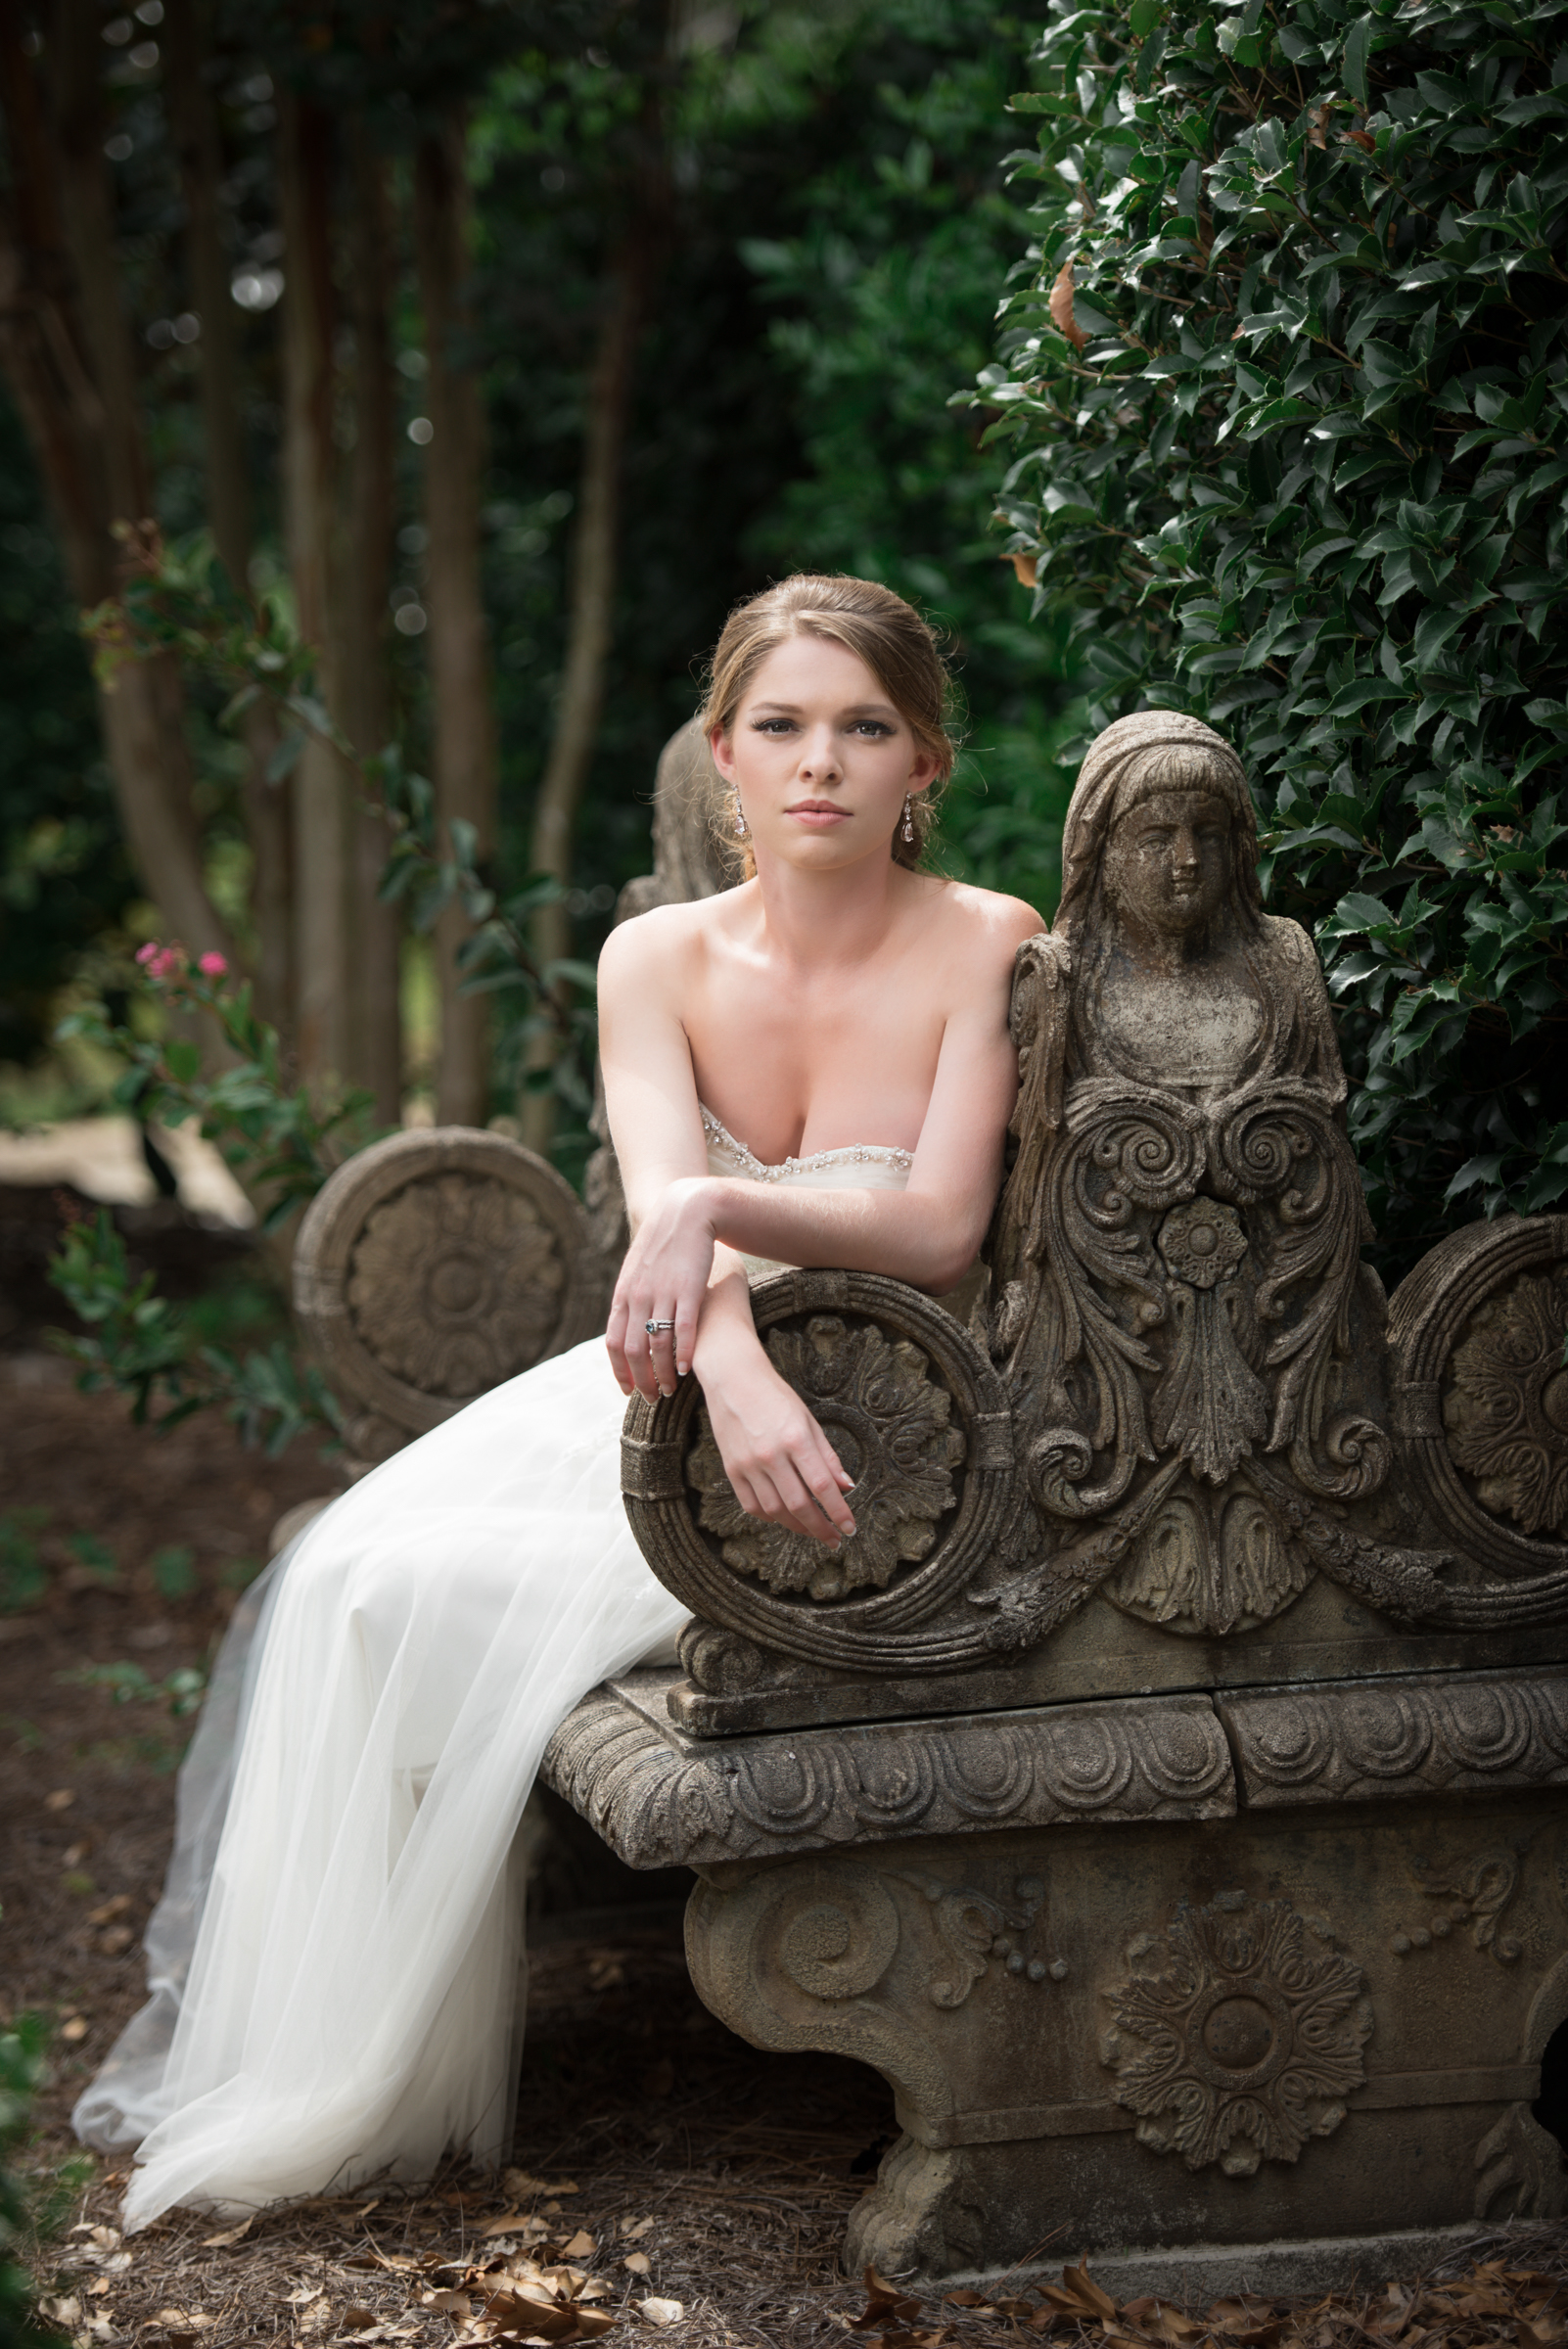 46.Karly after wedding shoot.jpg